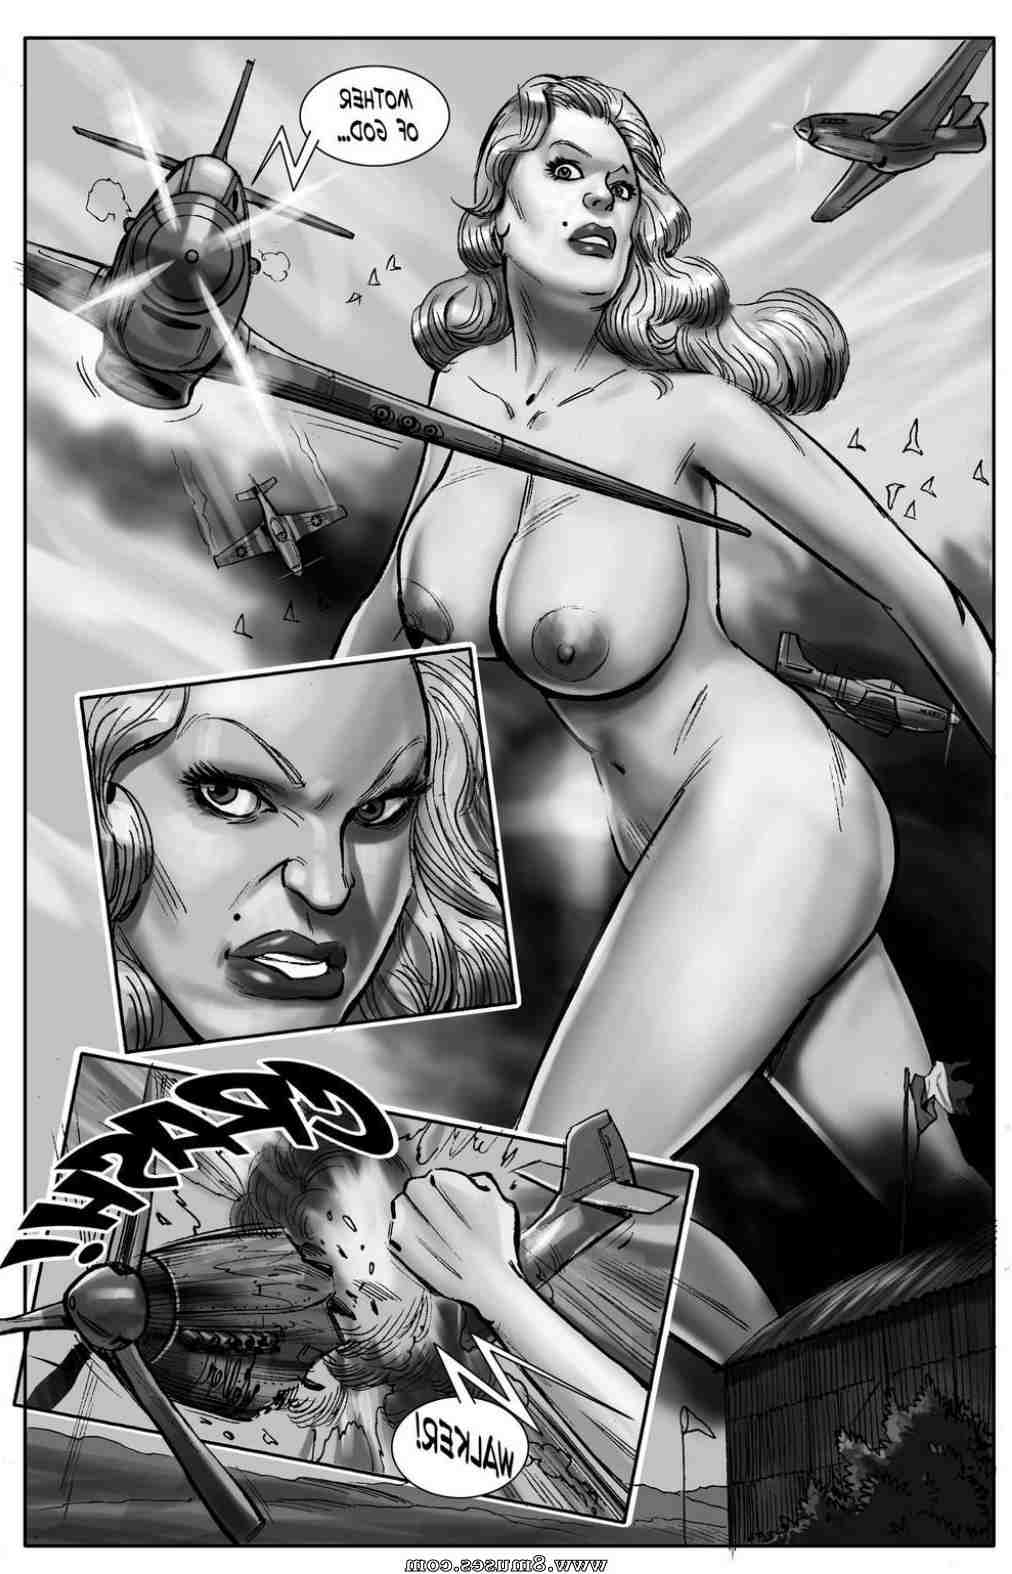 Giantess-Club-Comics/Project-Overman Project_Overman__8muses_-_Sex_and_Porn_Comics_5.jpg